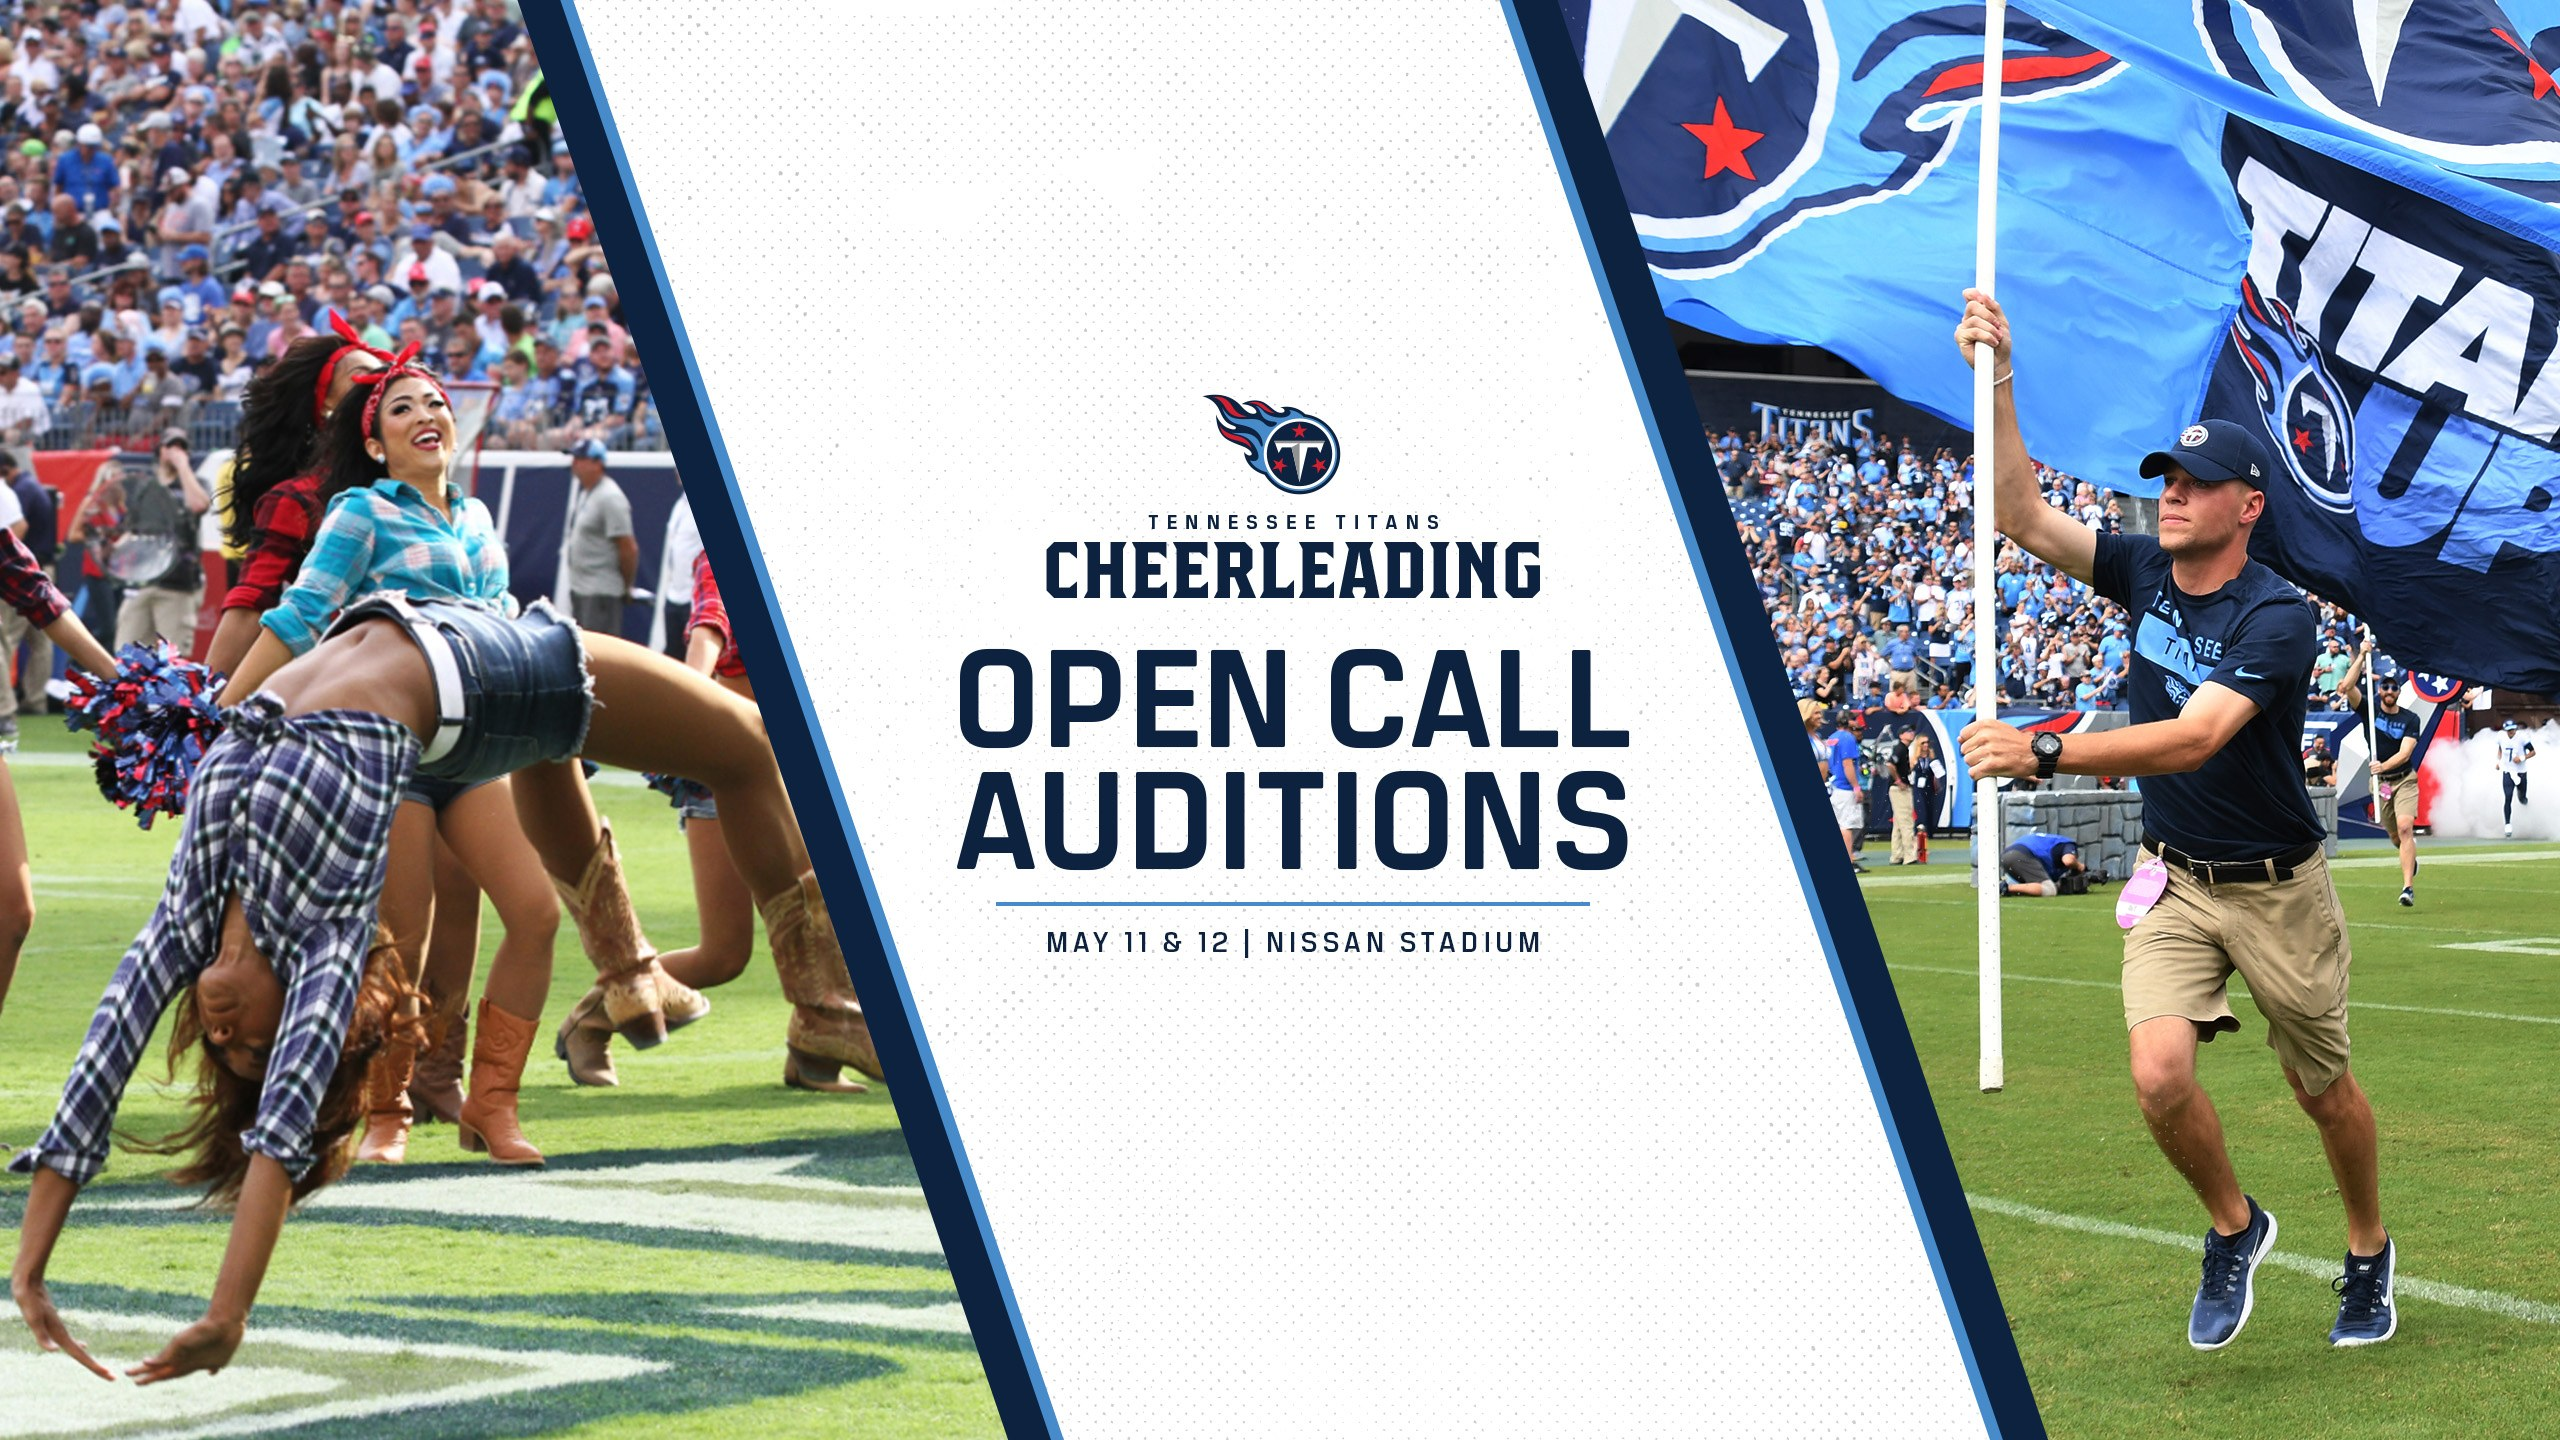 2019 Tennessee Titans Cheerleaders Auditions